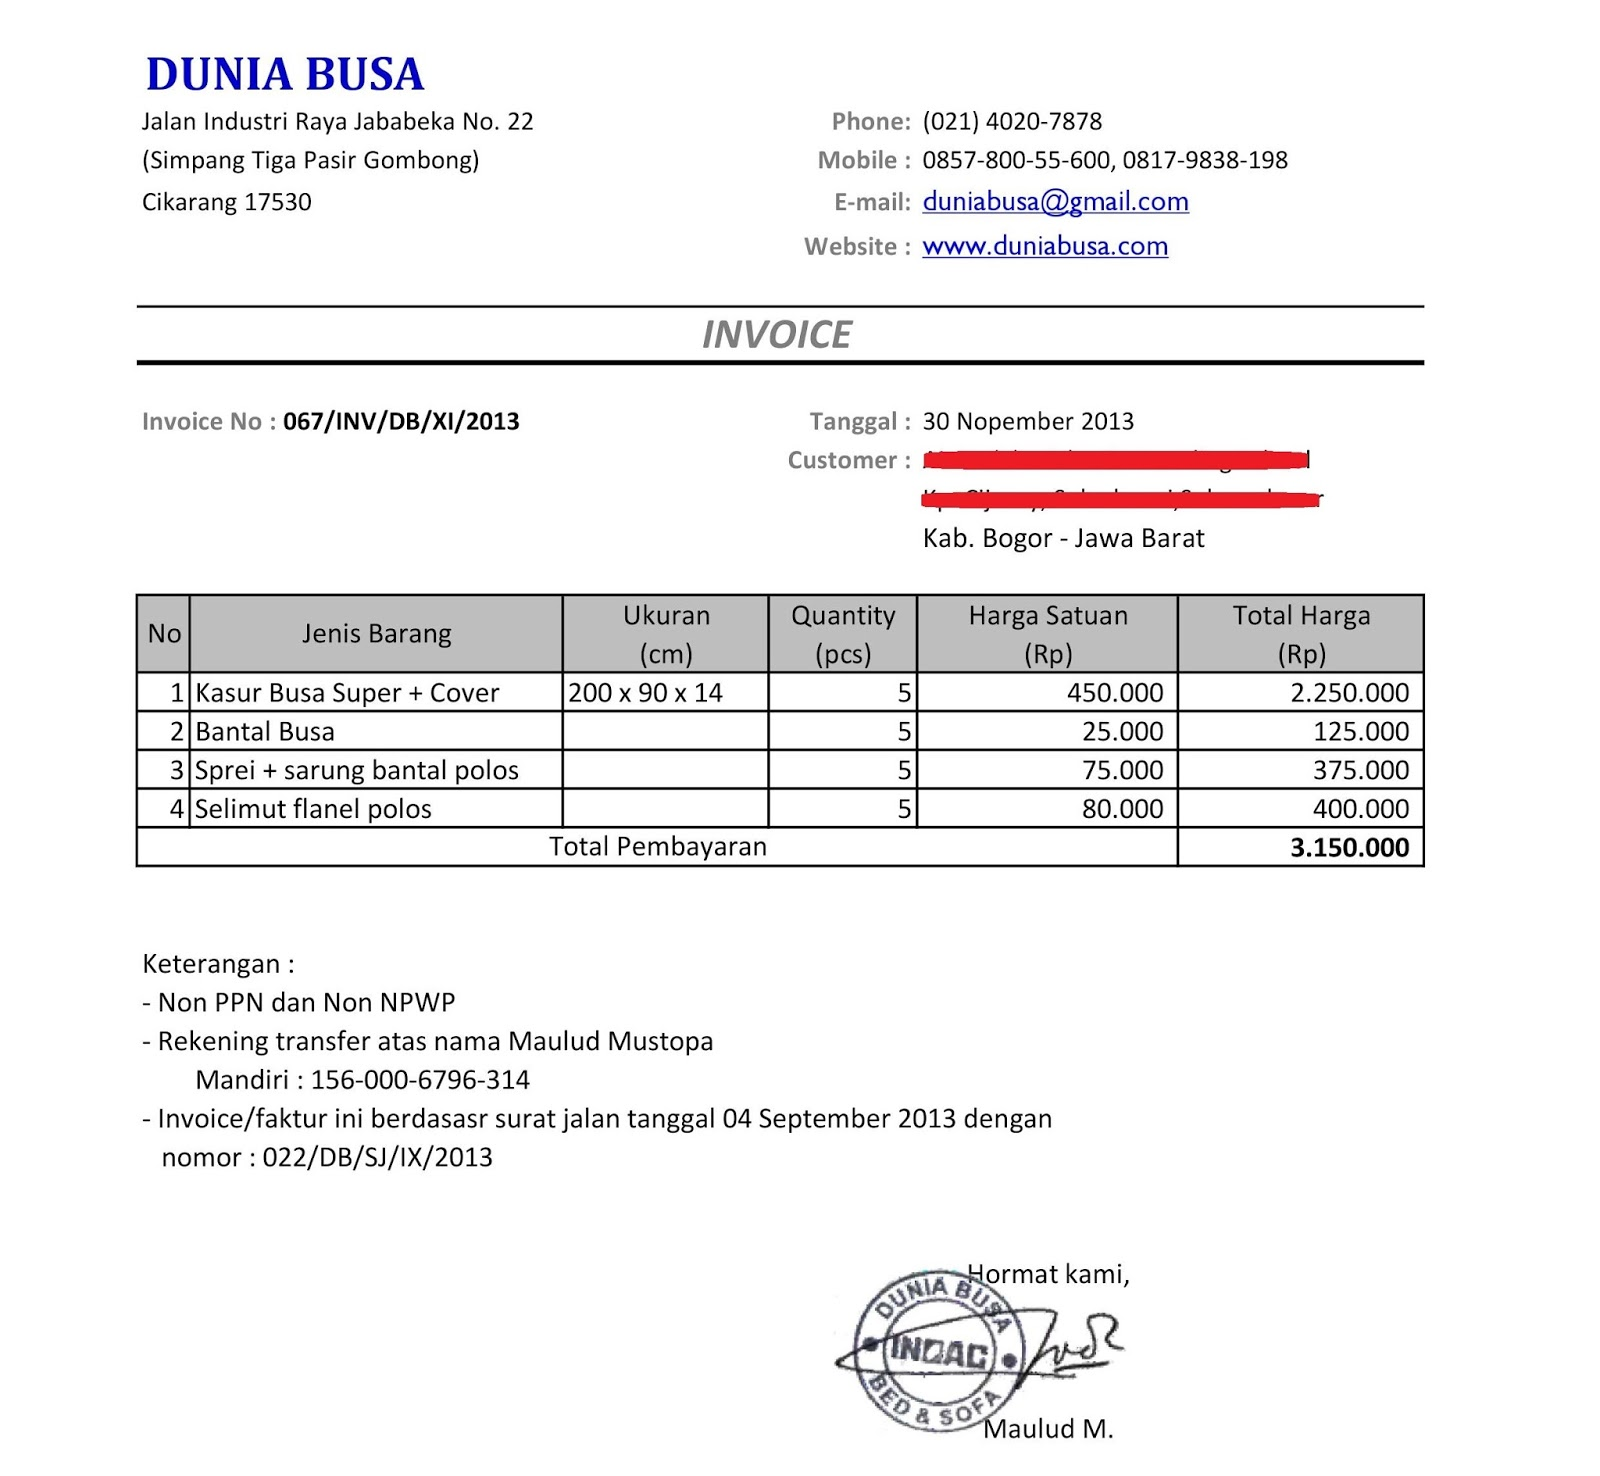 Usdgus  Outstanding Free Invoice Online  Create Invoice Online  Invoice Template  With Hot Contoh Format Invoice Atau Surat Tagihan  Brankas Arsip  Free Invoice Online With Archaic Invoice Creator Also Invoice In Spanish In Addition Po Number On Invoice And Invoice Template Excel As Well As Invoice Sample Additionally Whats An Invoice From Sklepco With Usdgus  Hot Free Invoice Online  Create Invoice Online  Invoice Template  With Archaic Contoh Format Invoice Atau Surat Tagihan  Brankas Arsip  Free Invoice Online And Outstanding Invoice Creator Also Invoice In Spanish In Addition Po Number On Invoice From Sklepco